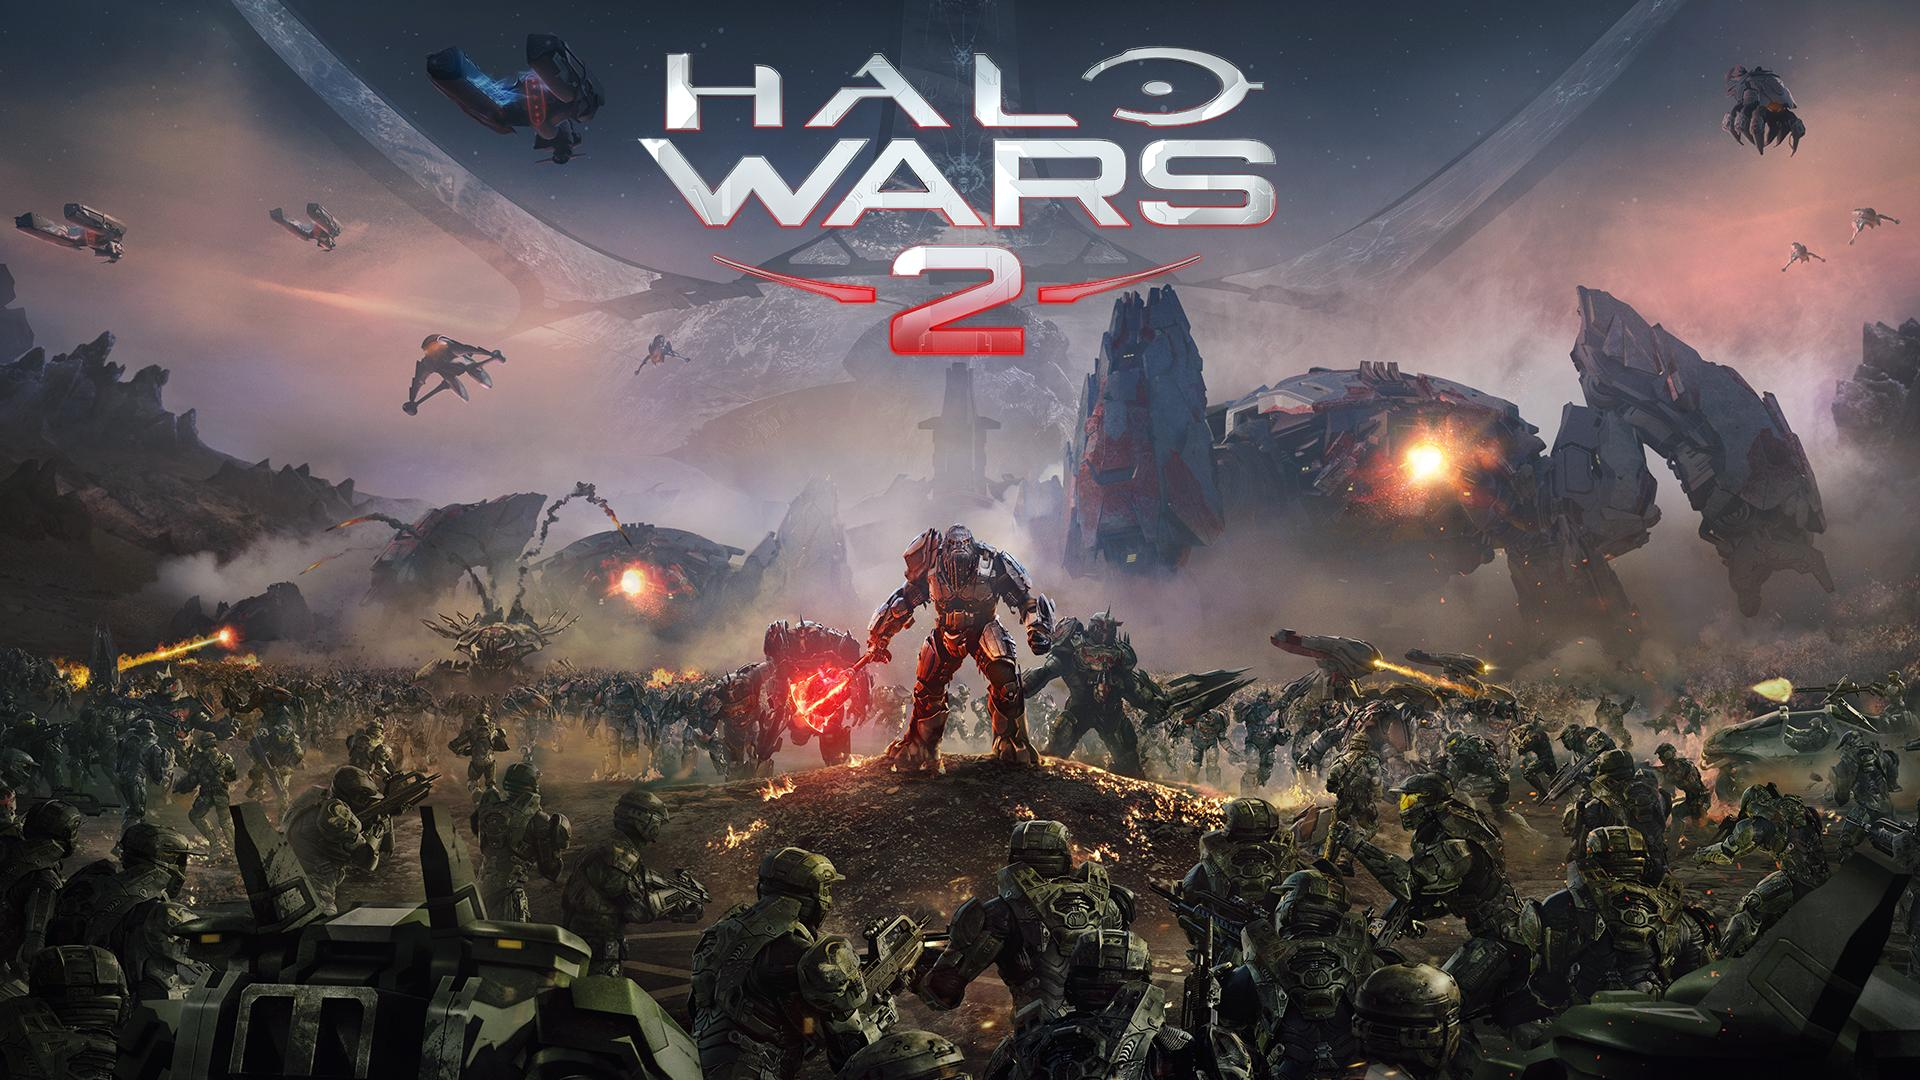 Ya disponible la demo de Halo War 2 en Xbox One y pronto también en PC